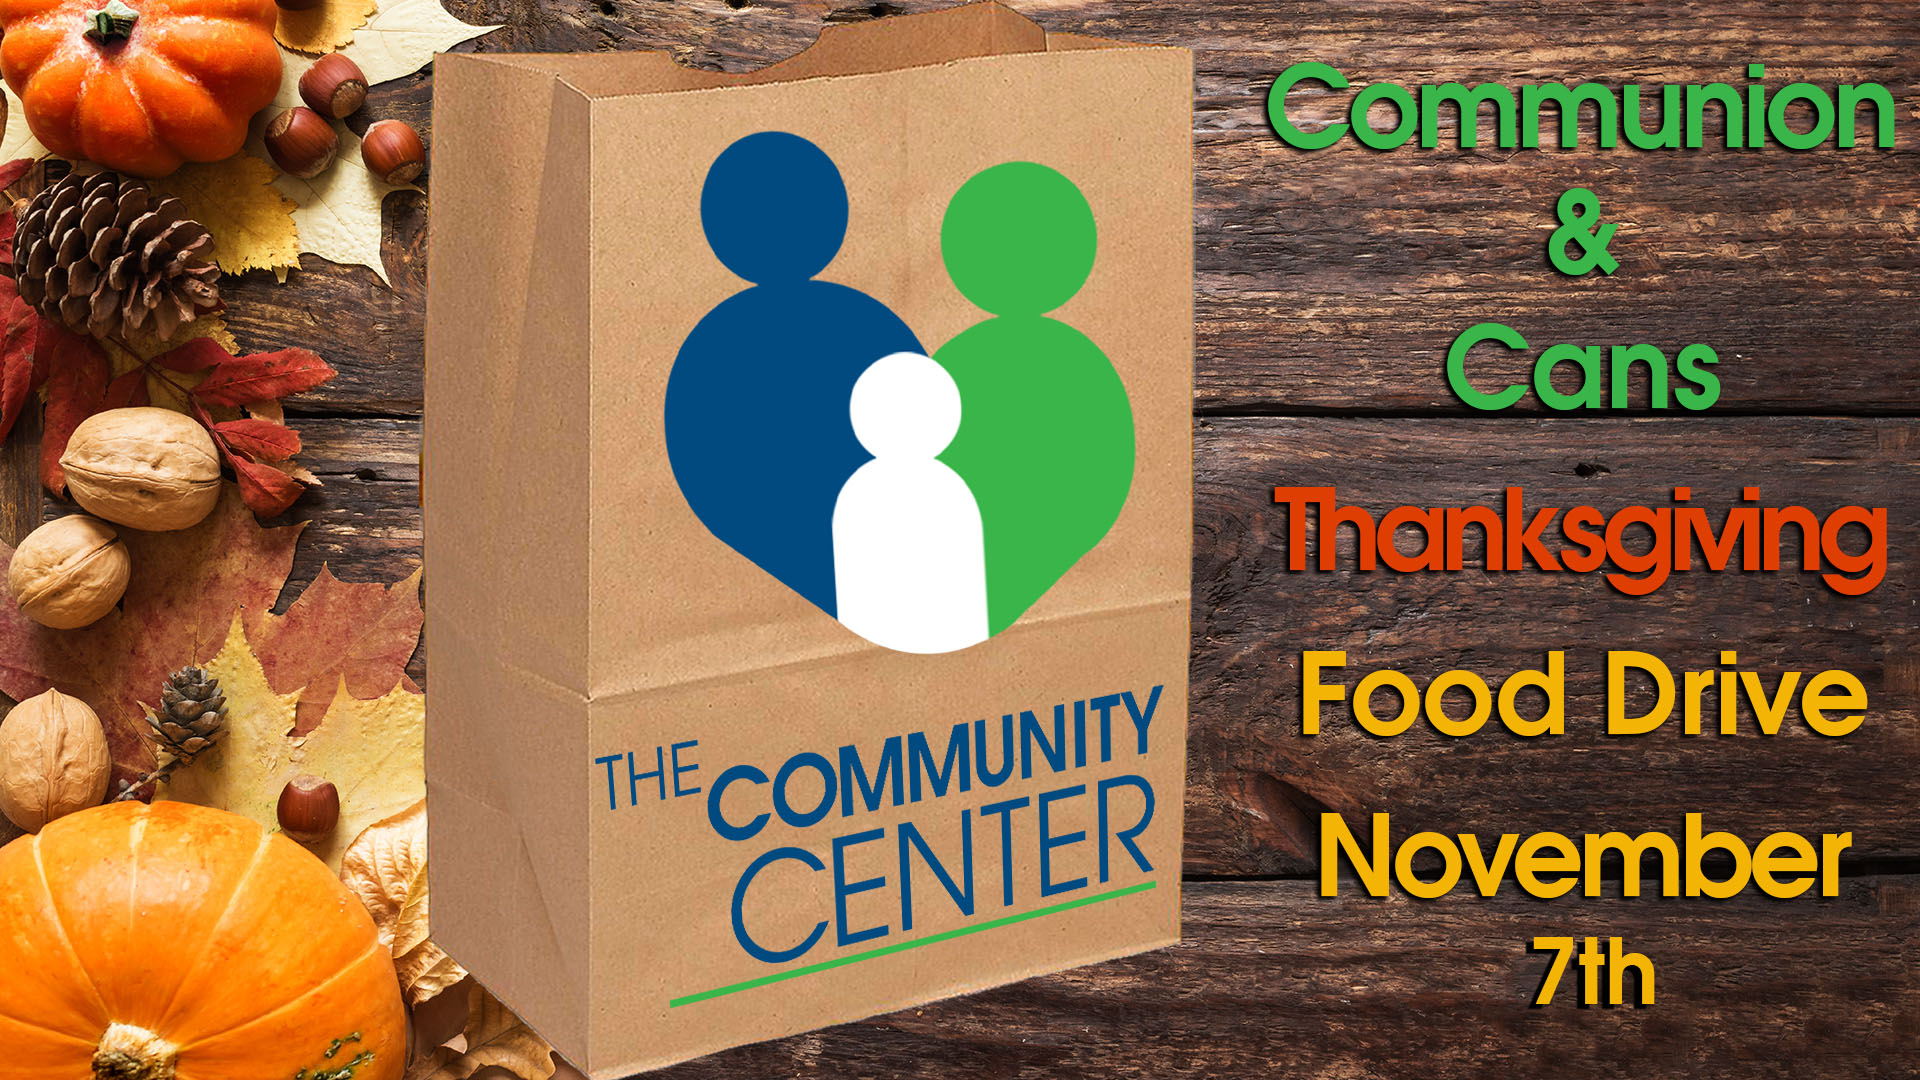 Communion and Cans Thanks Giving Food Drive